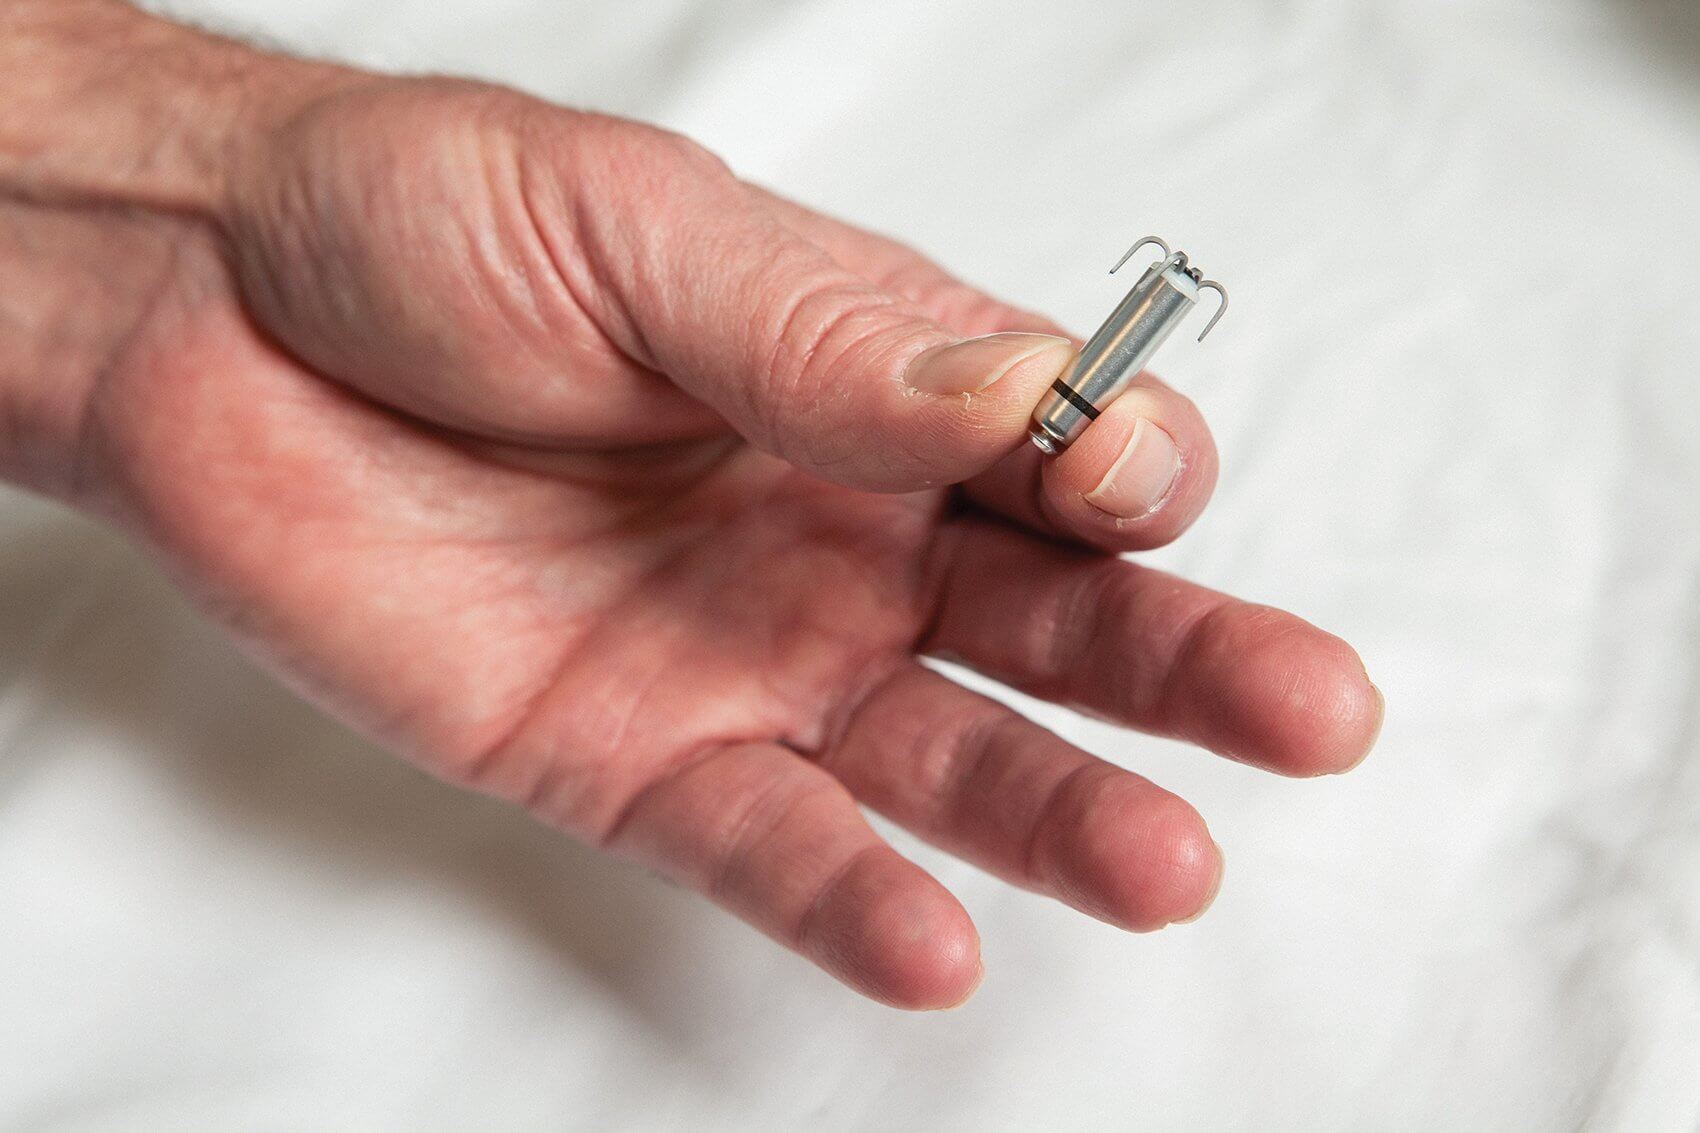 Less than one-tenth the size of a conventional pacemaker, the Micra is delivered directly into the heart through a catheter inserted in the femoral vein.